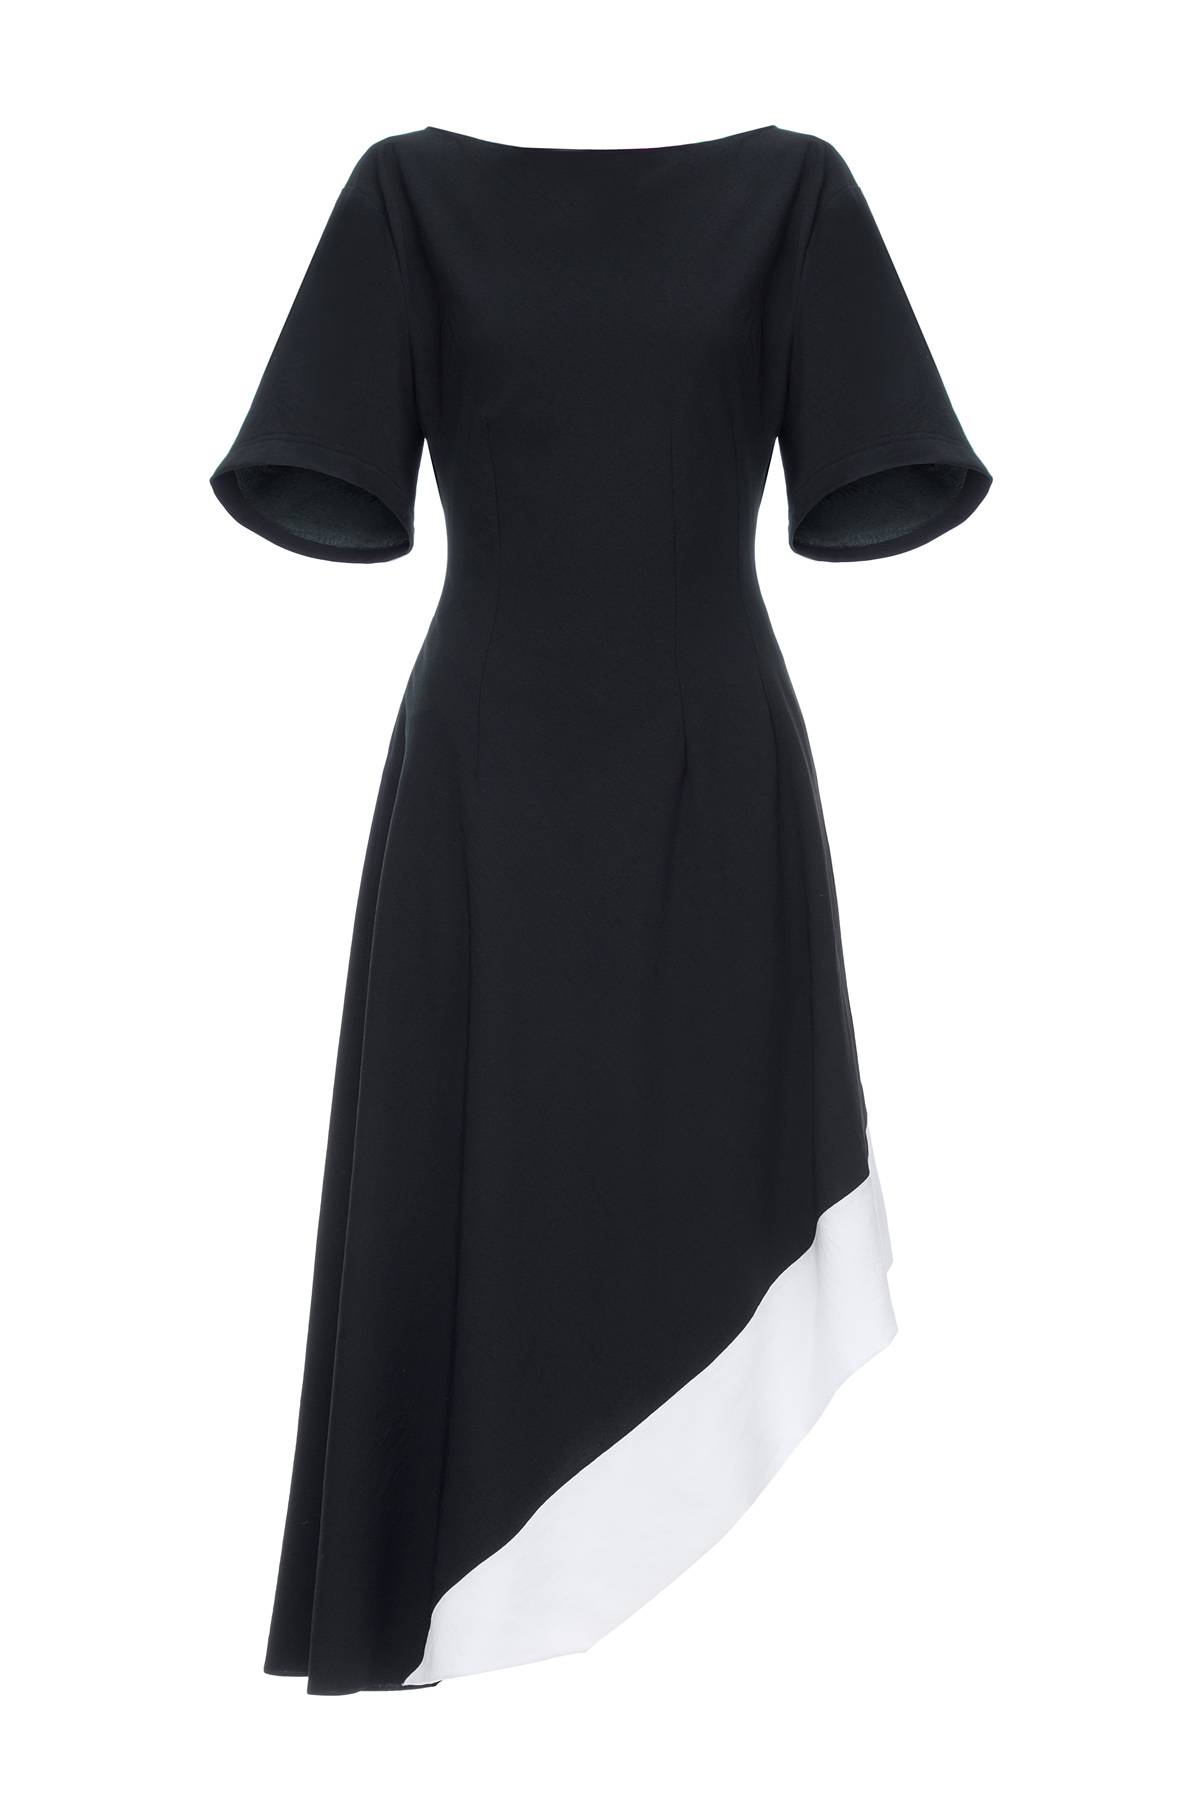 LOEWE Asymmetric Dress Black/White front